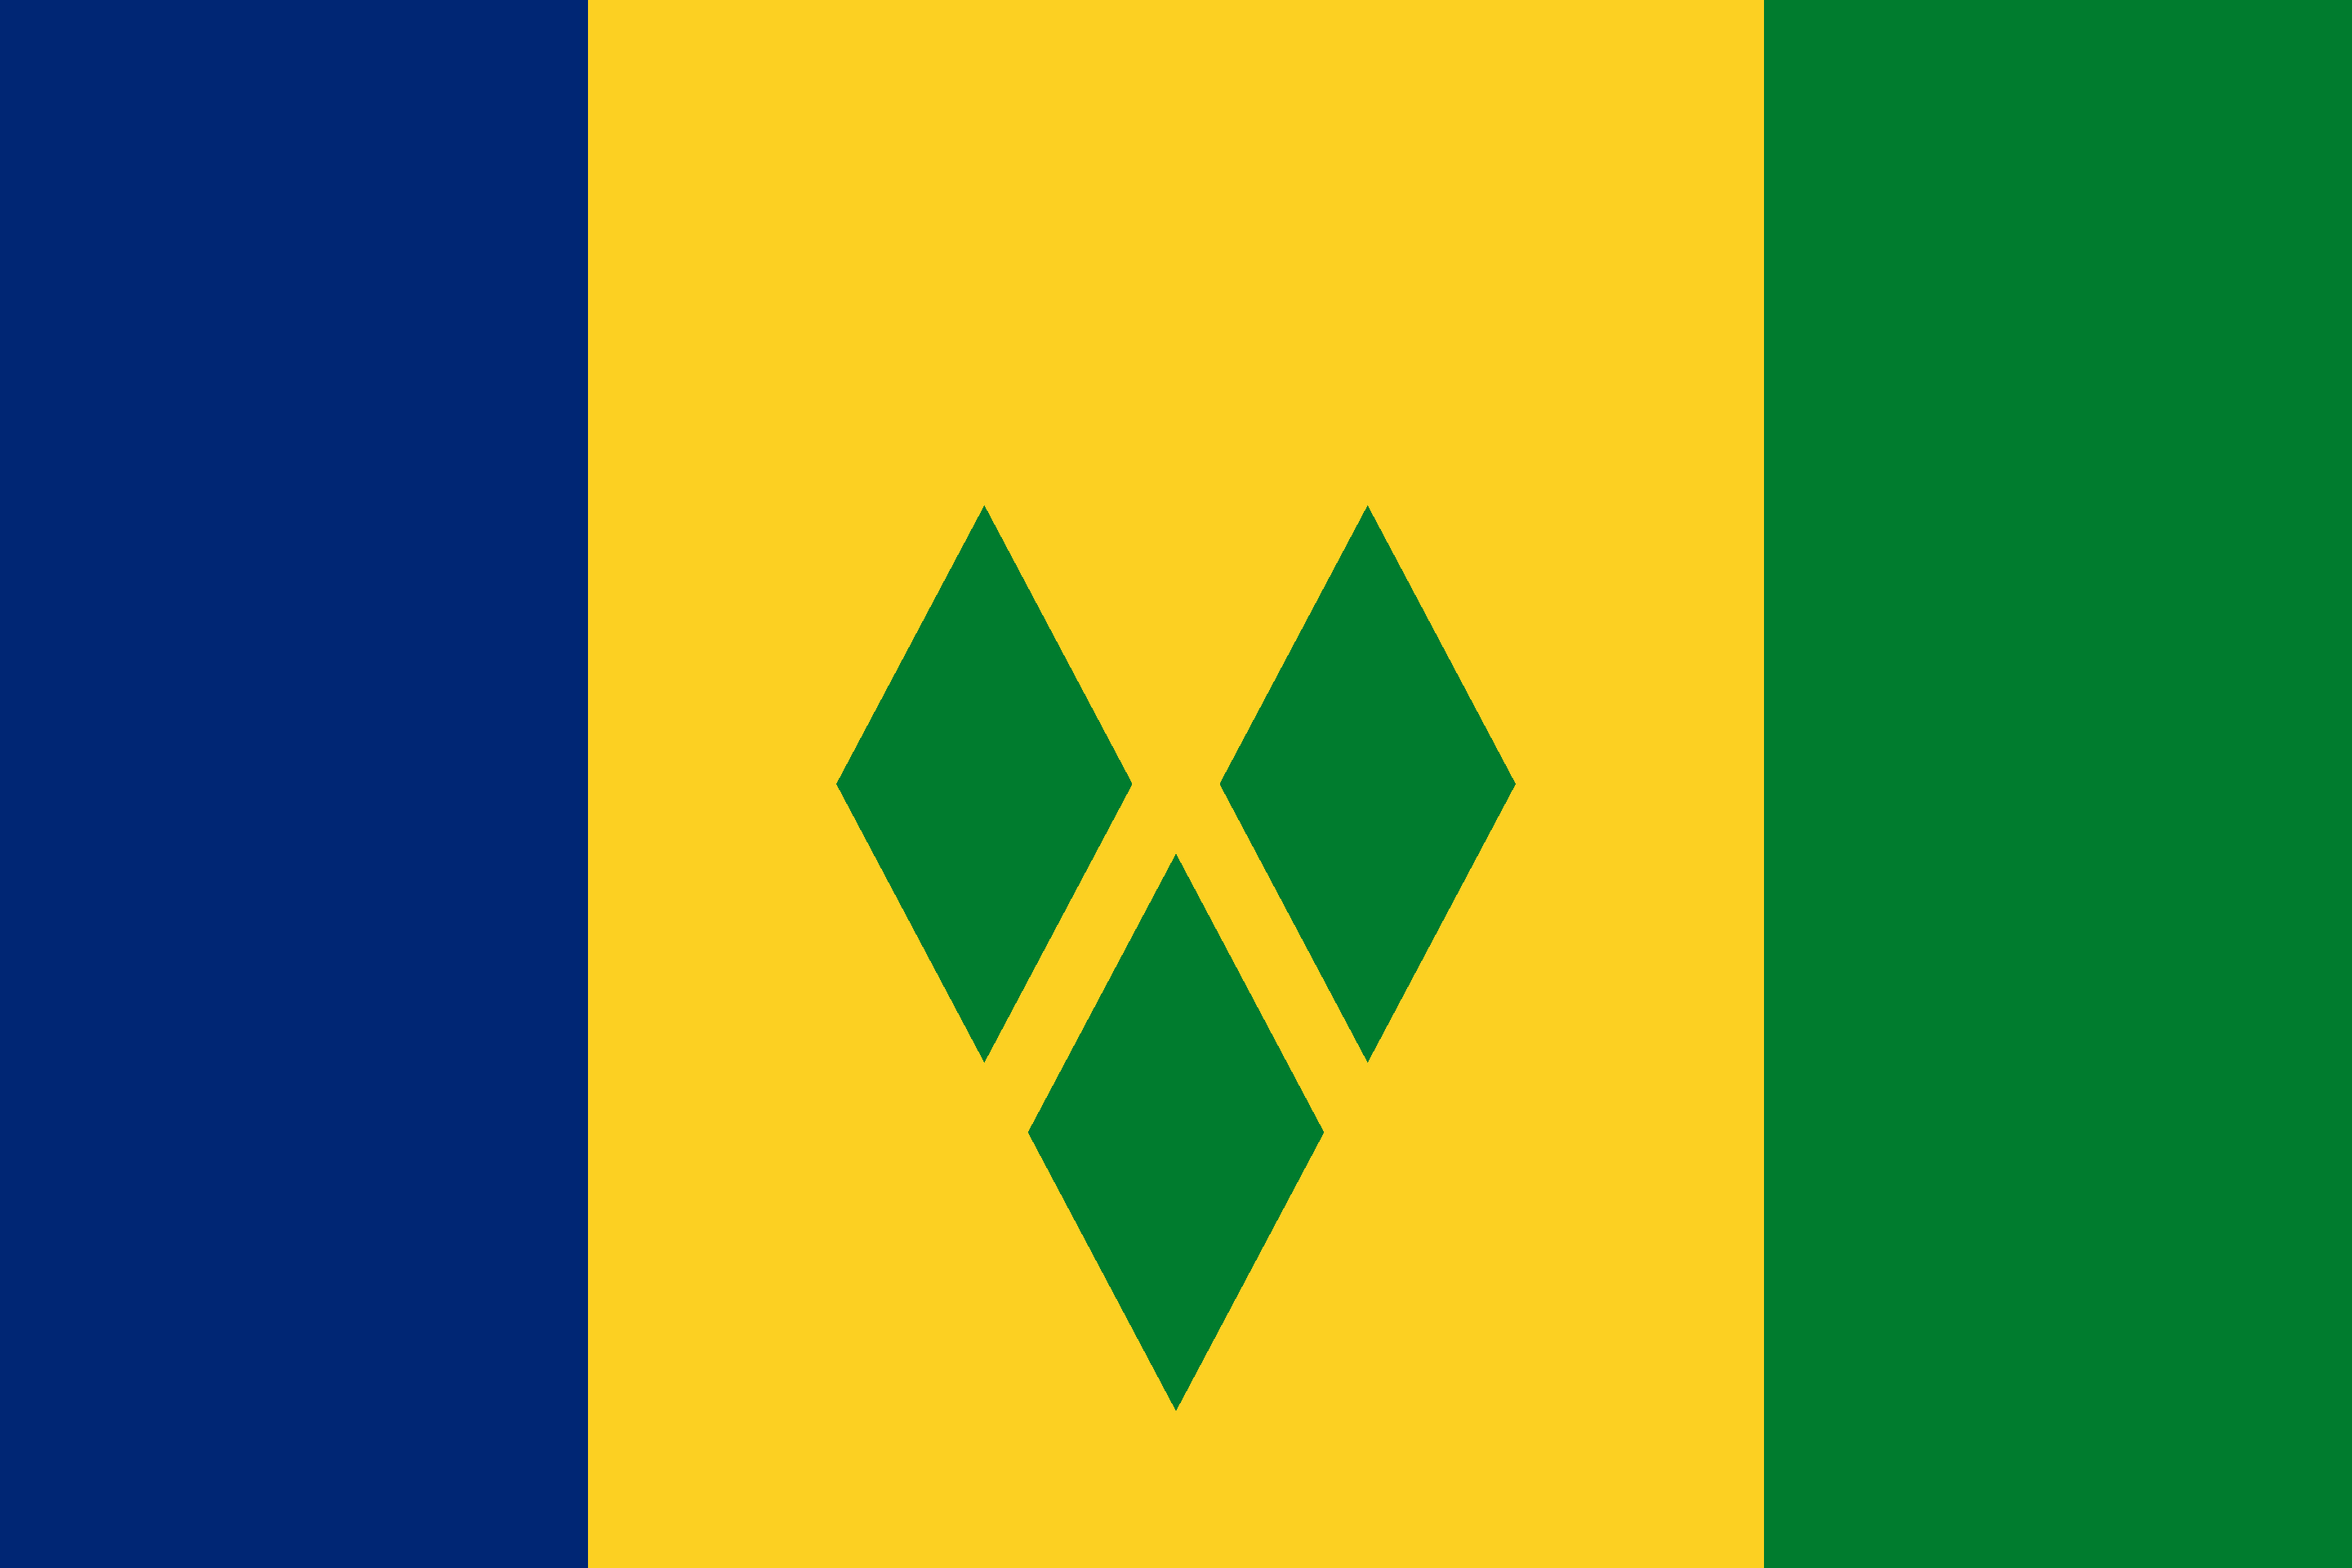 Saint Vincent and the Grenadines Flag - St. Vincent and the Grenadines Drone Laws